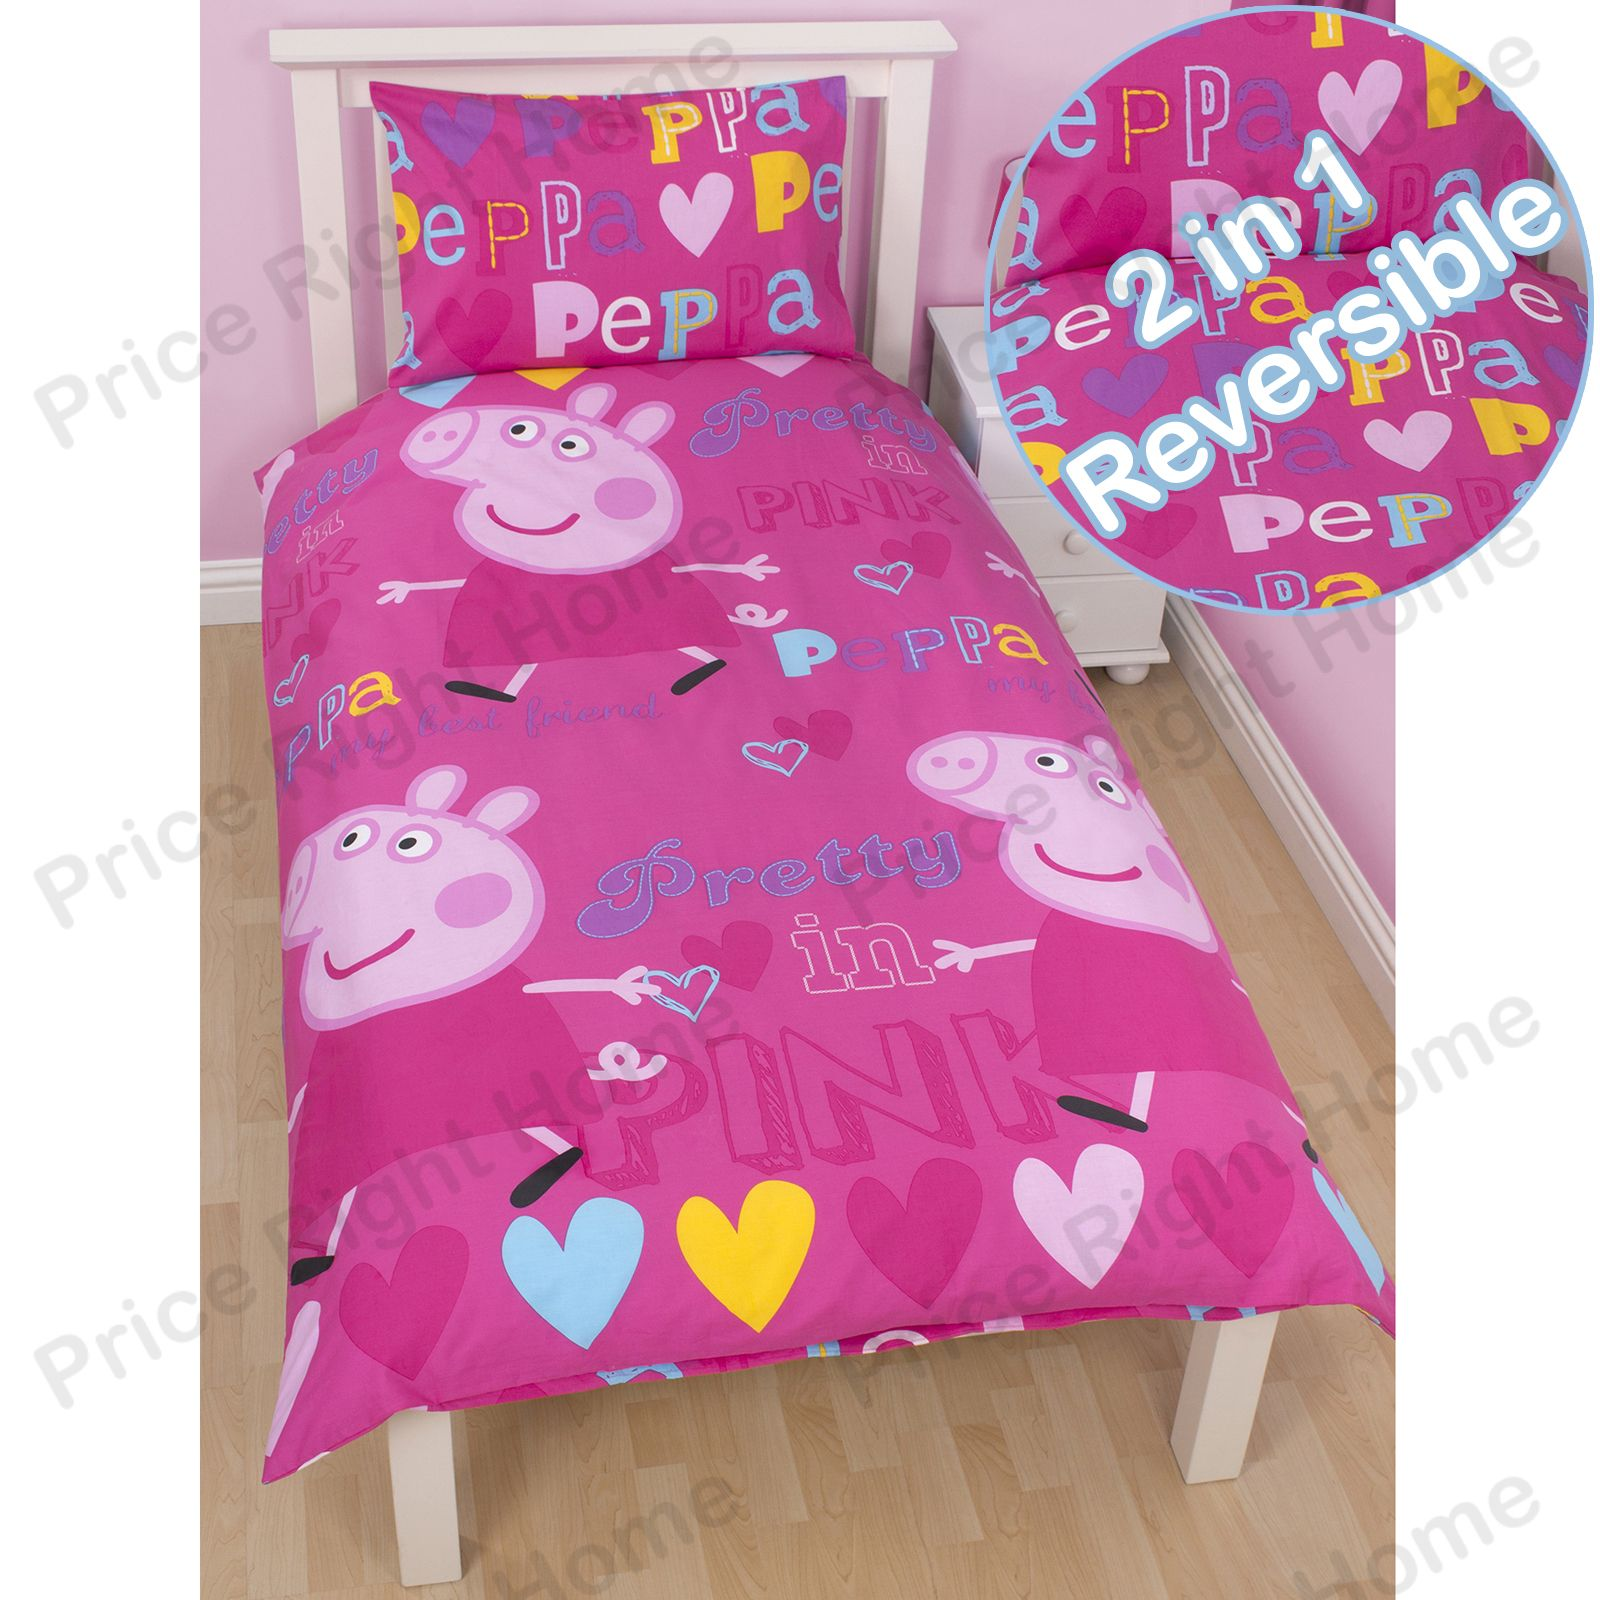 Peppa-Pig-amp-George-le-Cochon-Edredon-Couvres-Bebe-Simple-amp-Double-Tailles